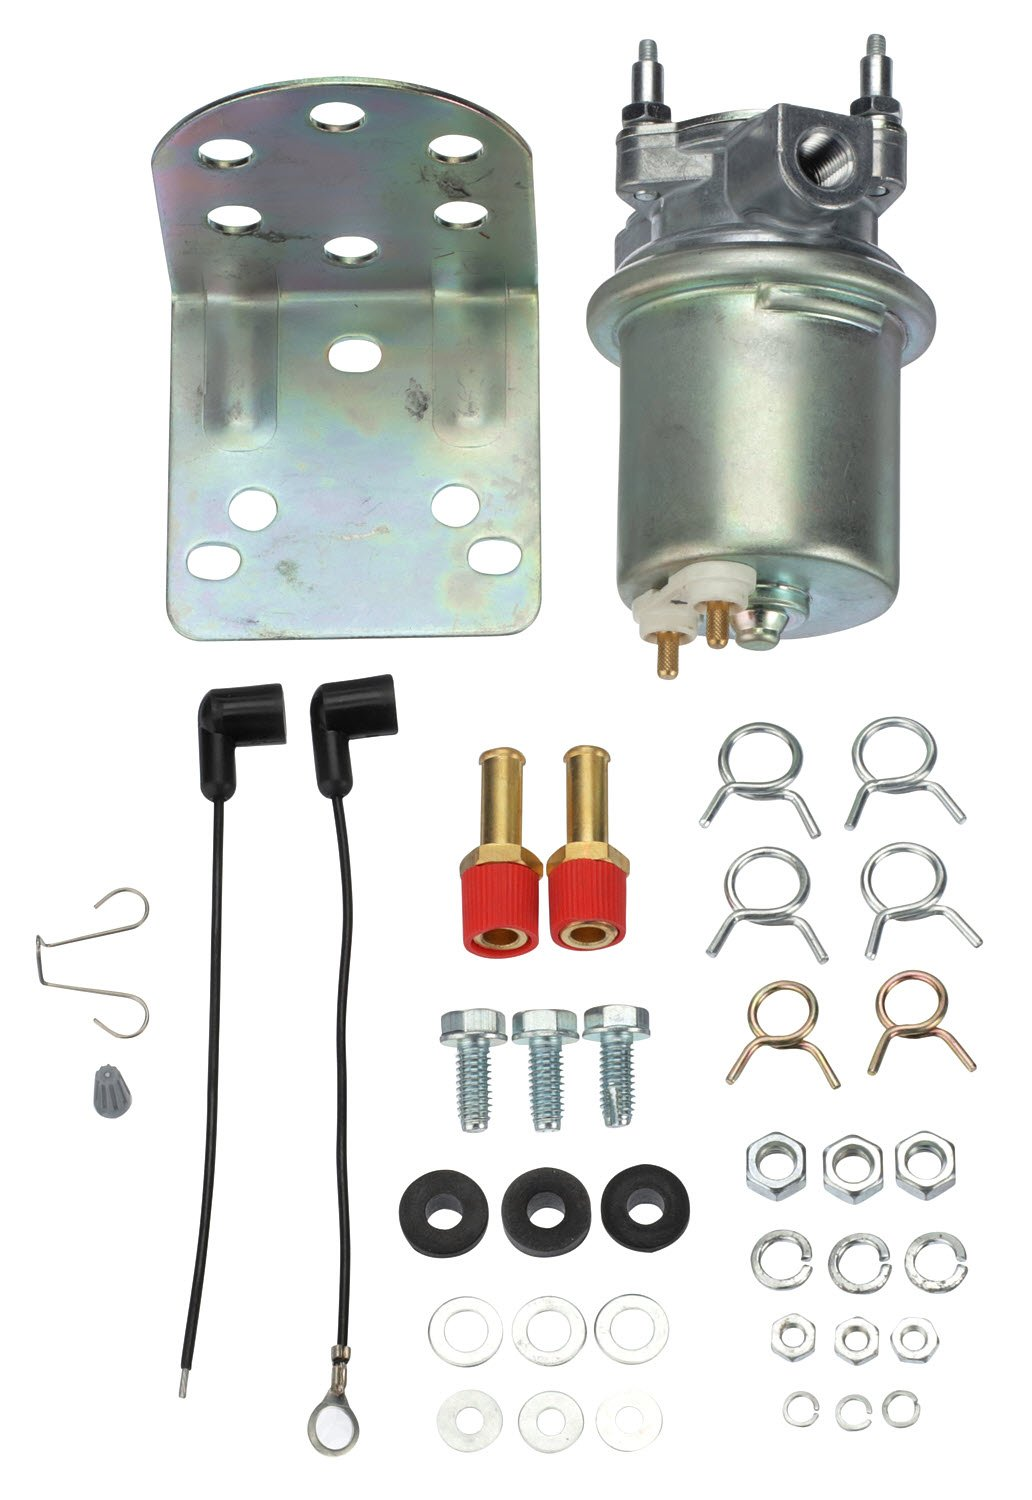 Carter P4070 In-Line Electric Fuel Pump by Carter